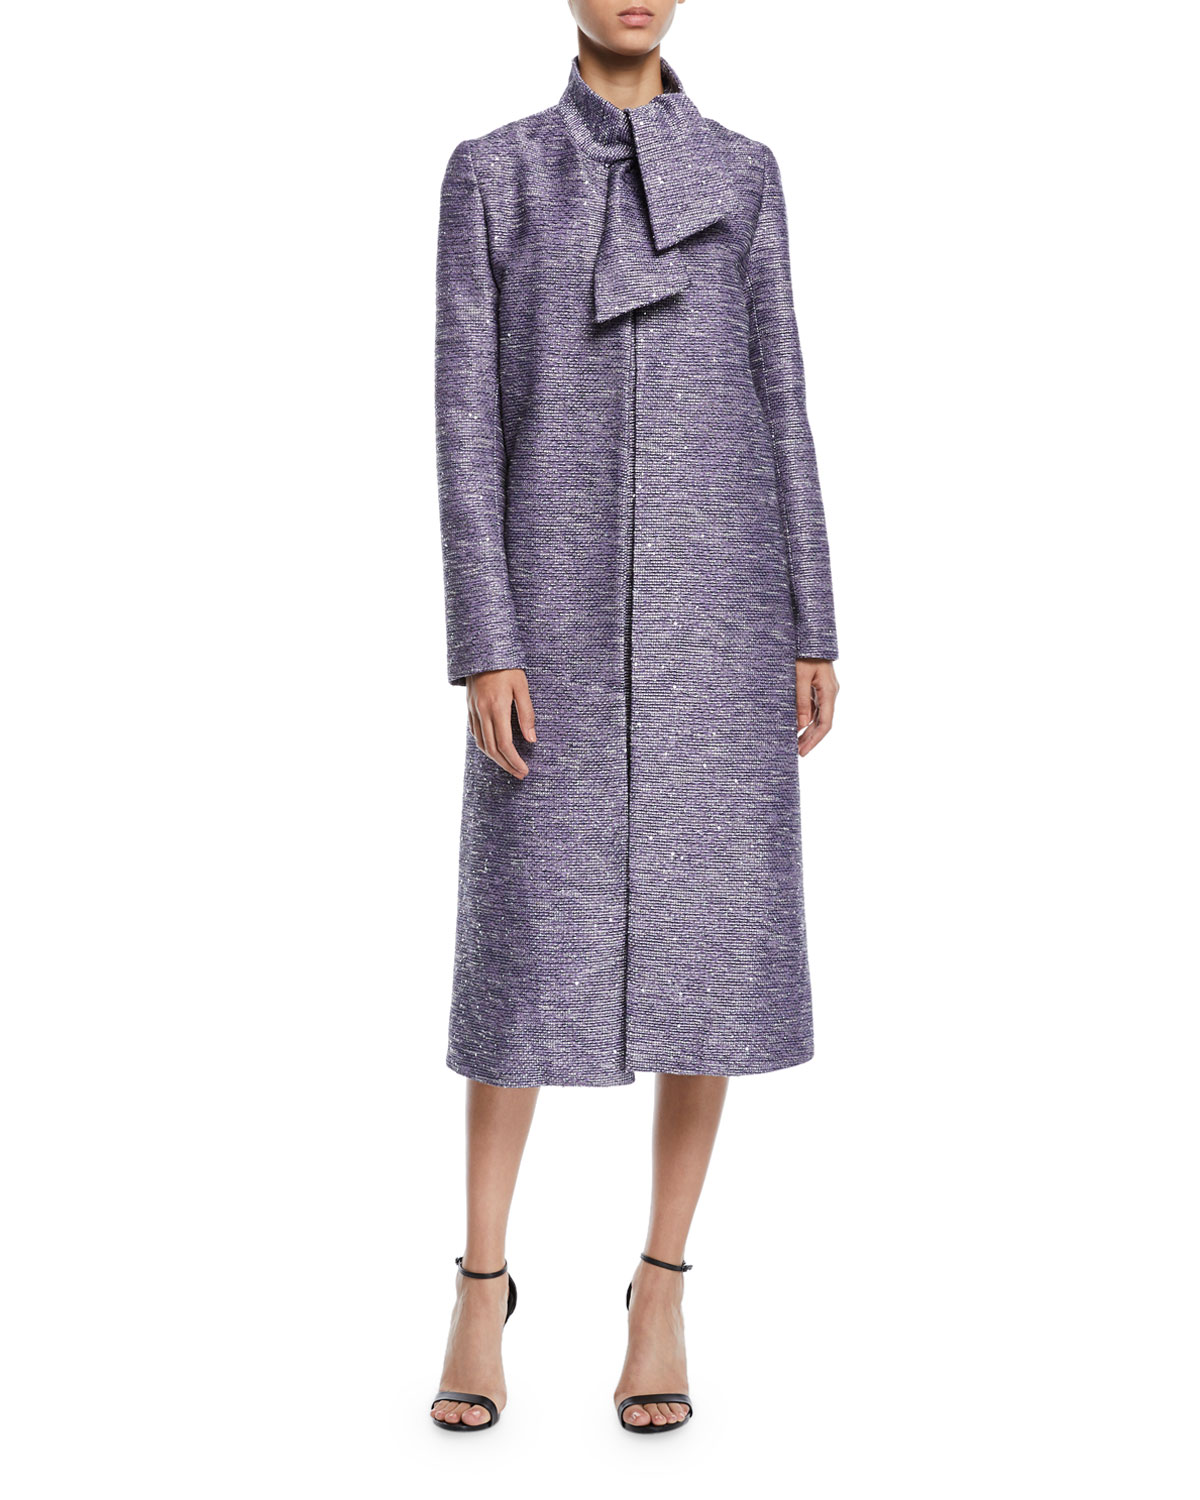 Lela Rose Coats TIE-NECK SEQUIN-EMBROIDERED TWEED COAT